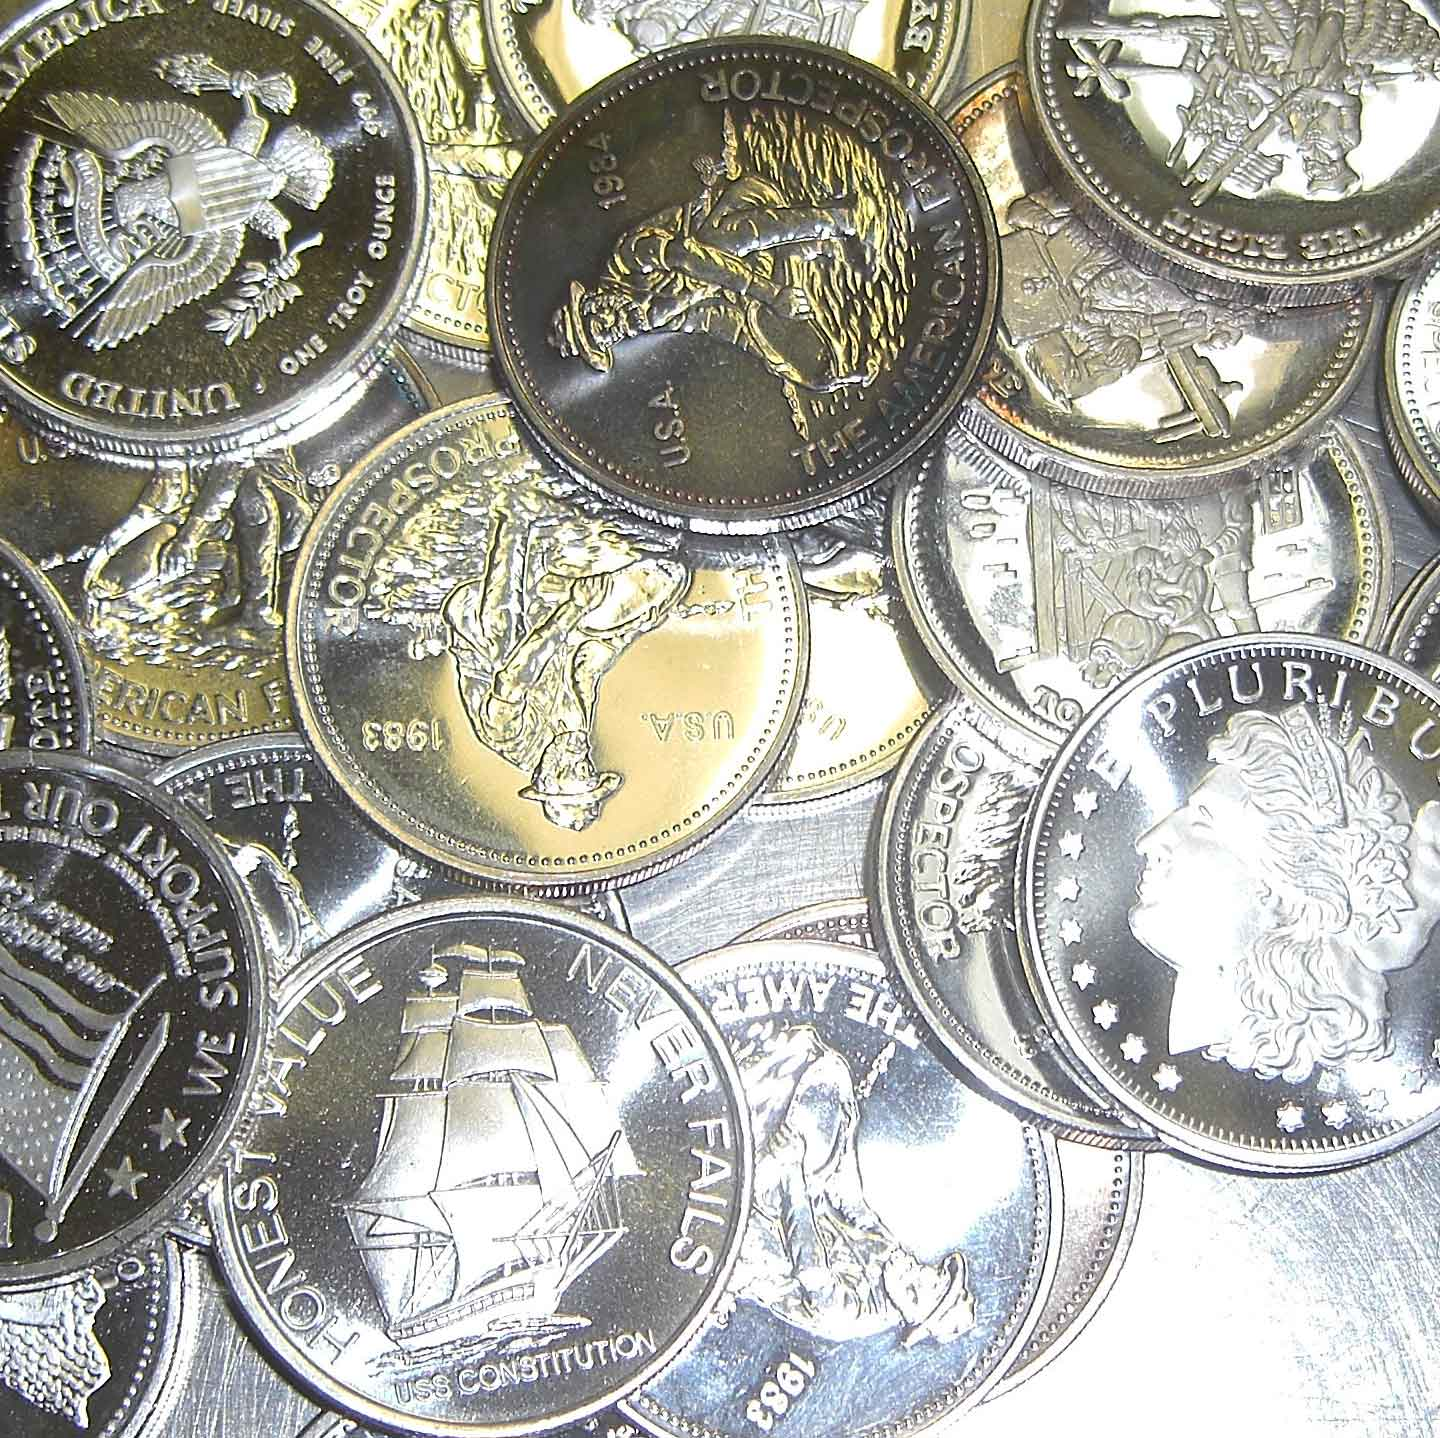 1-troy ounce .999 Silver Bullion Rounds | Secondary, Circulated, and Extra Inventory